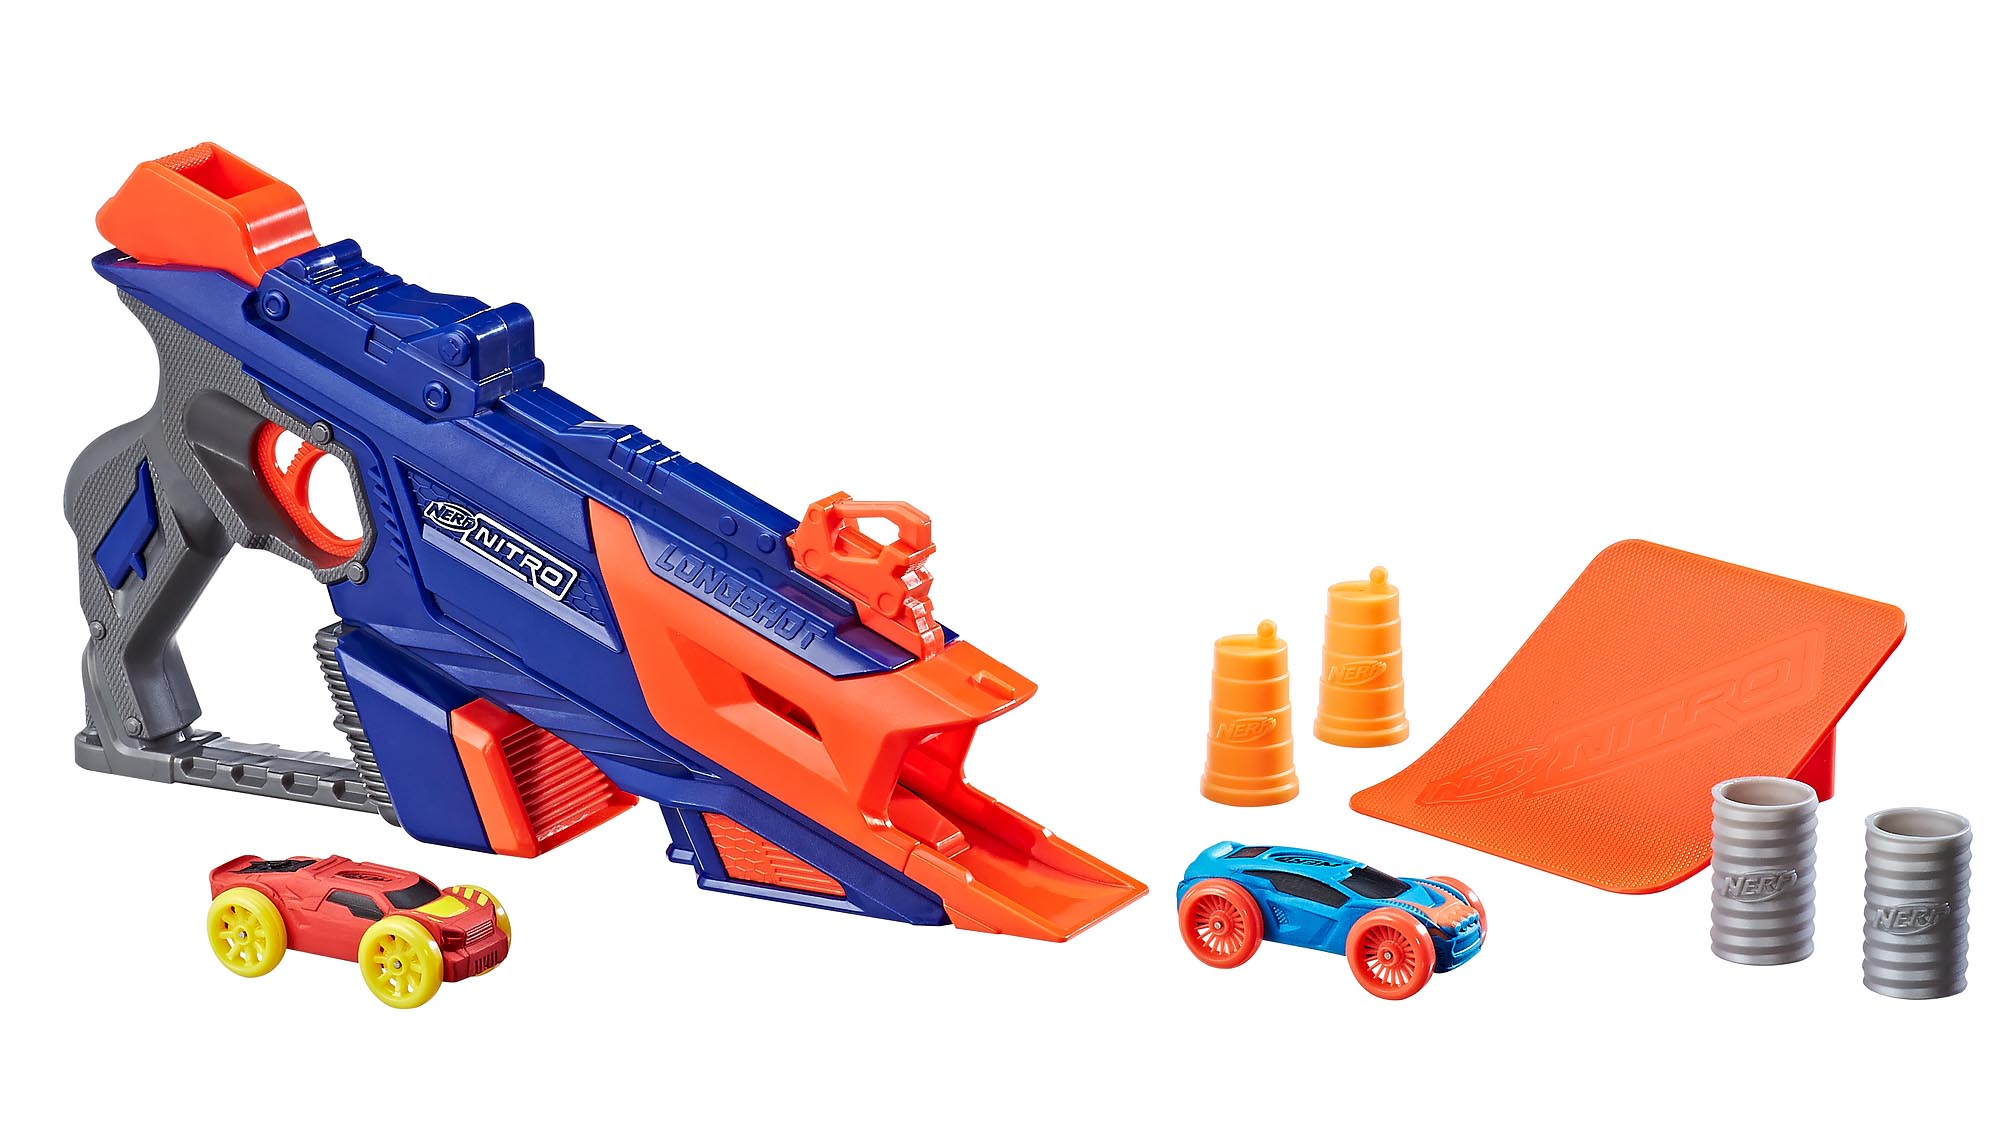 The best toys for 3 year olds 5 year olds and 8 year olds and